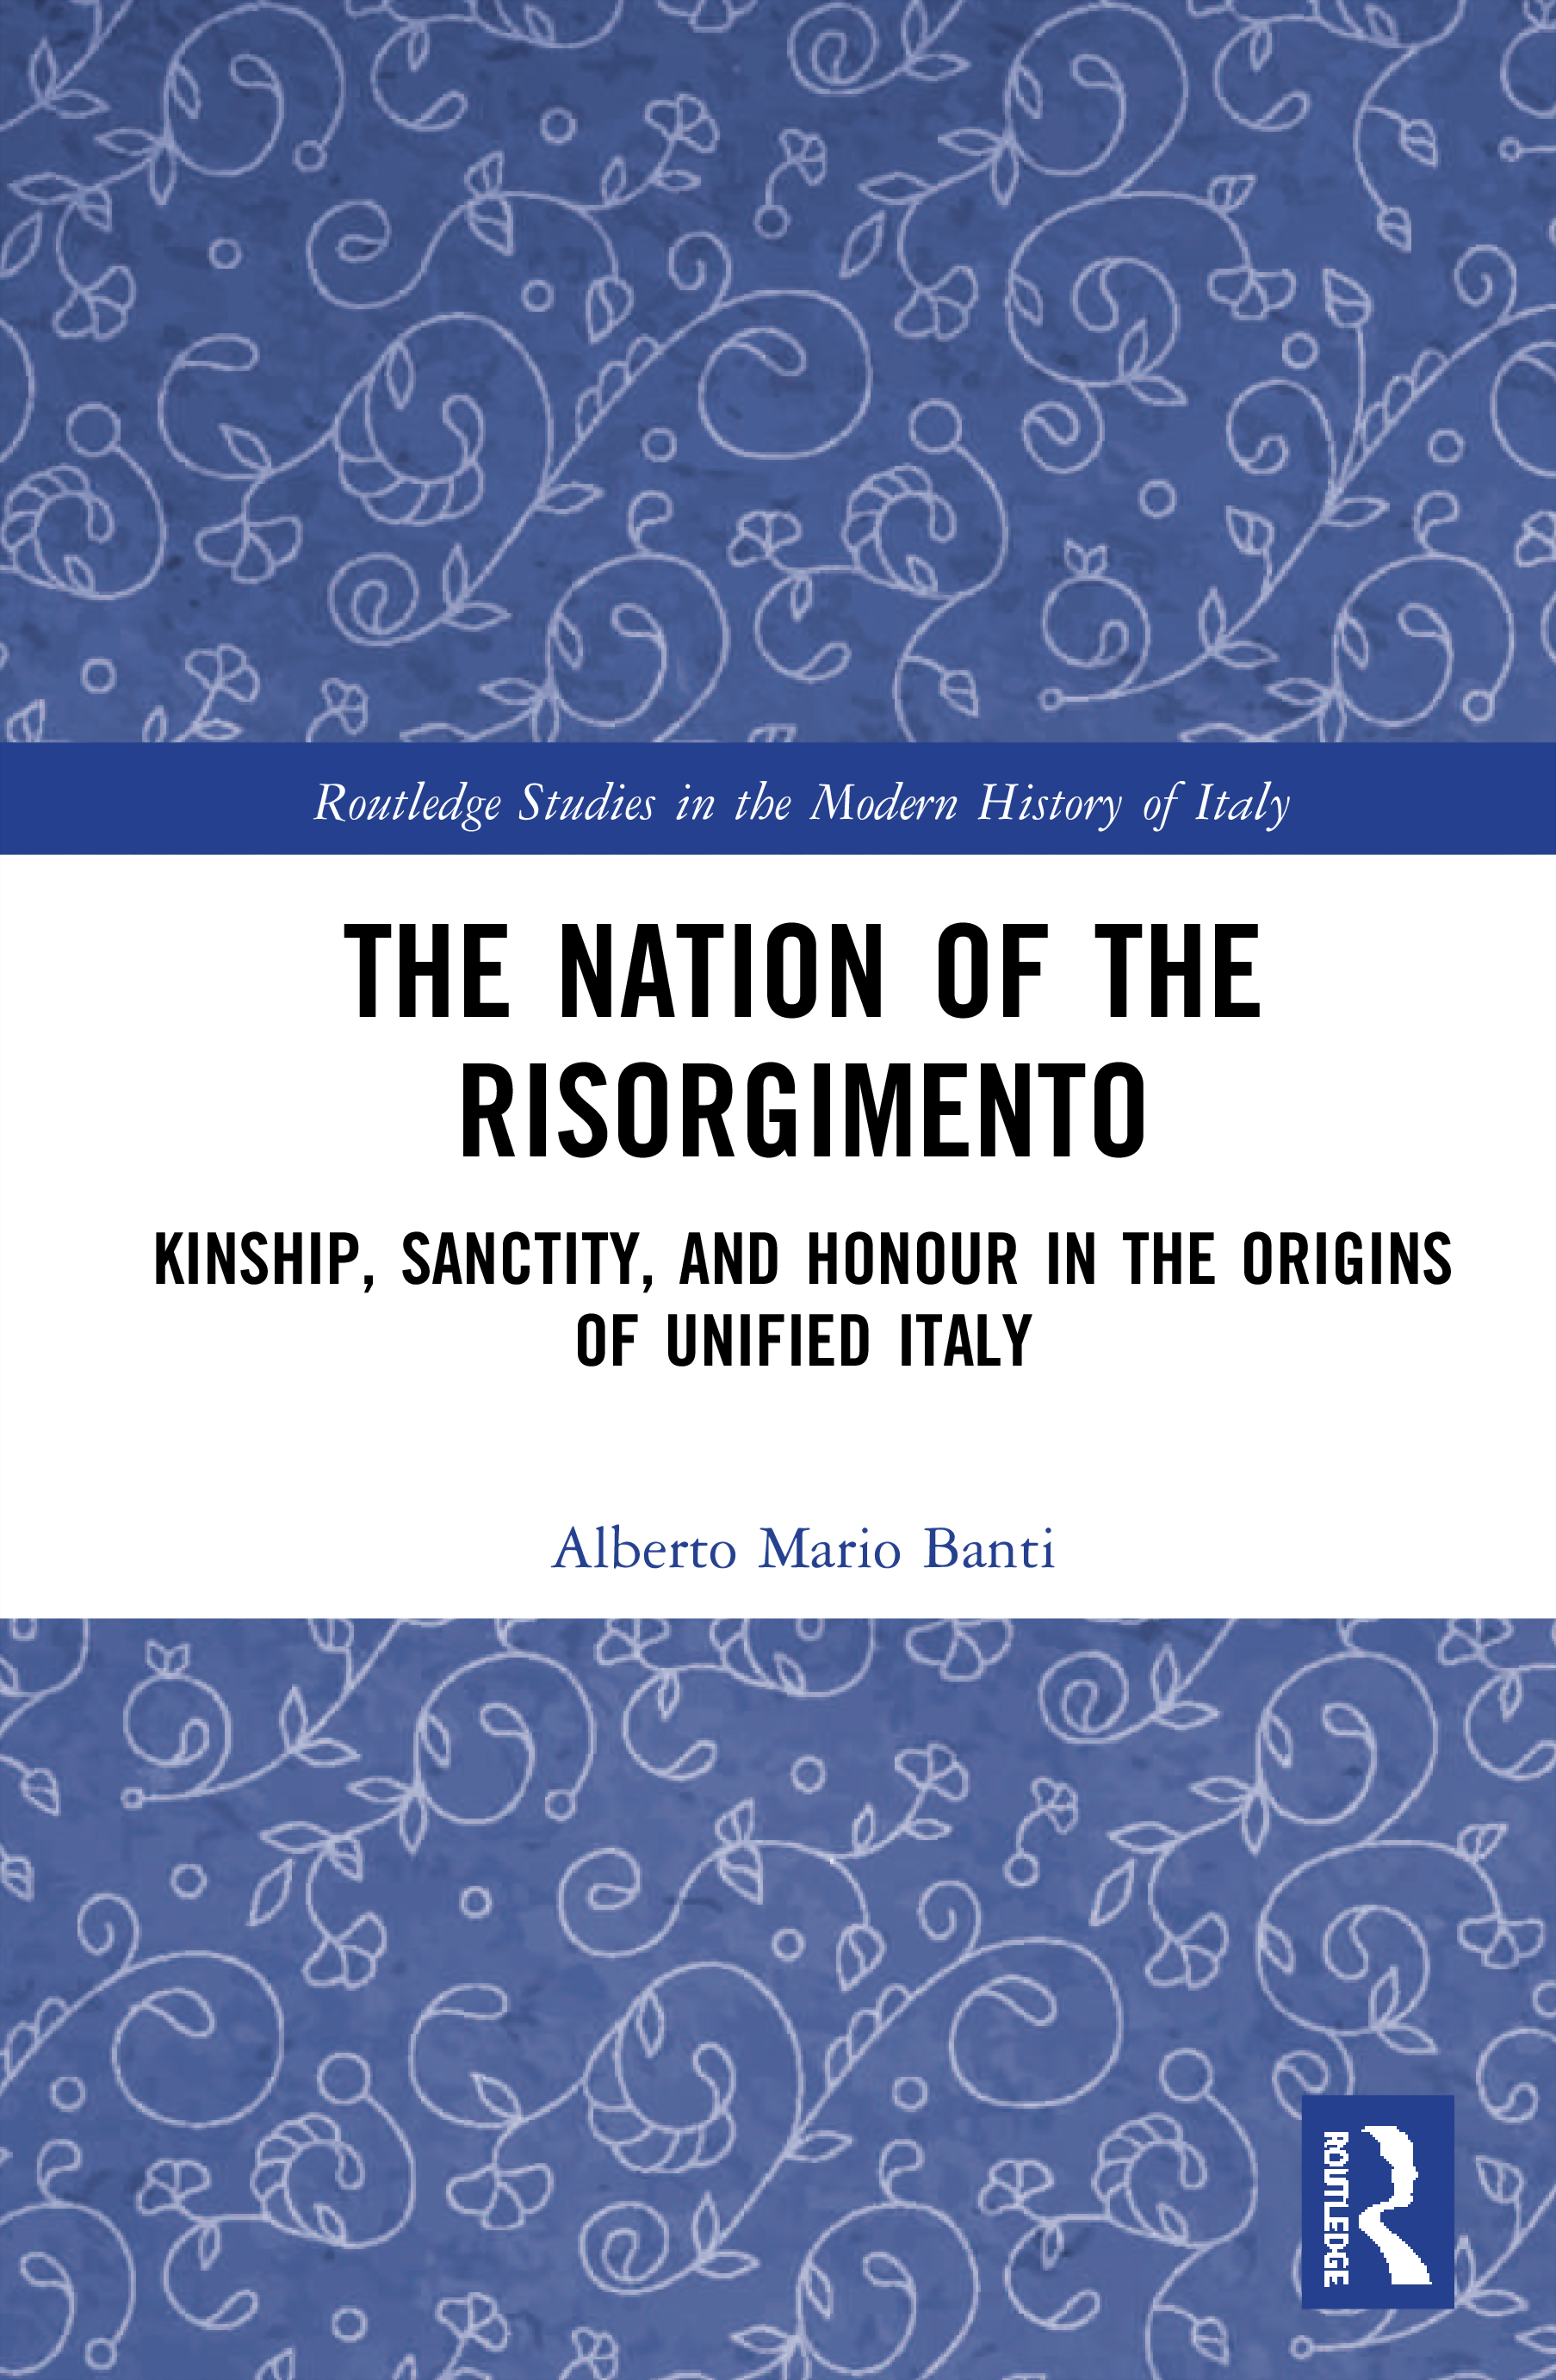 The Nation of the Risorgimento: Kinship, Sanctity, and Honour in the Origins of Unified Italy book cover